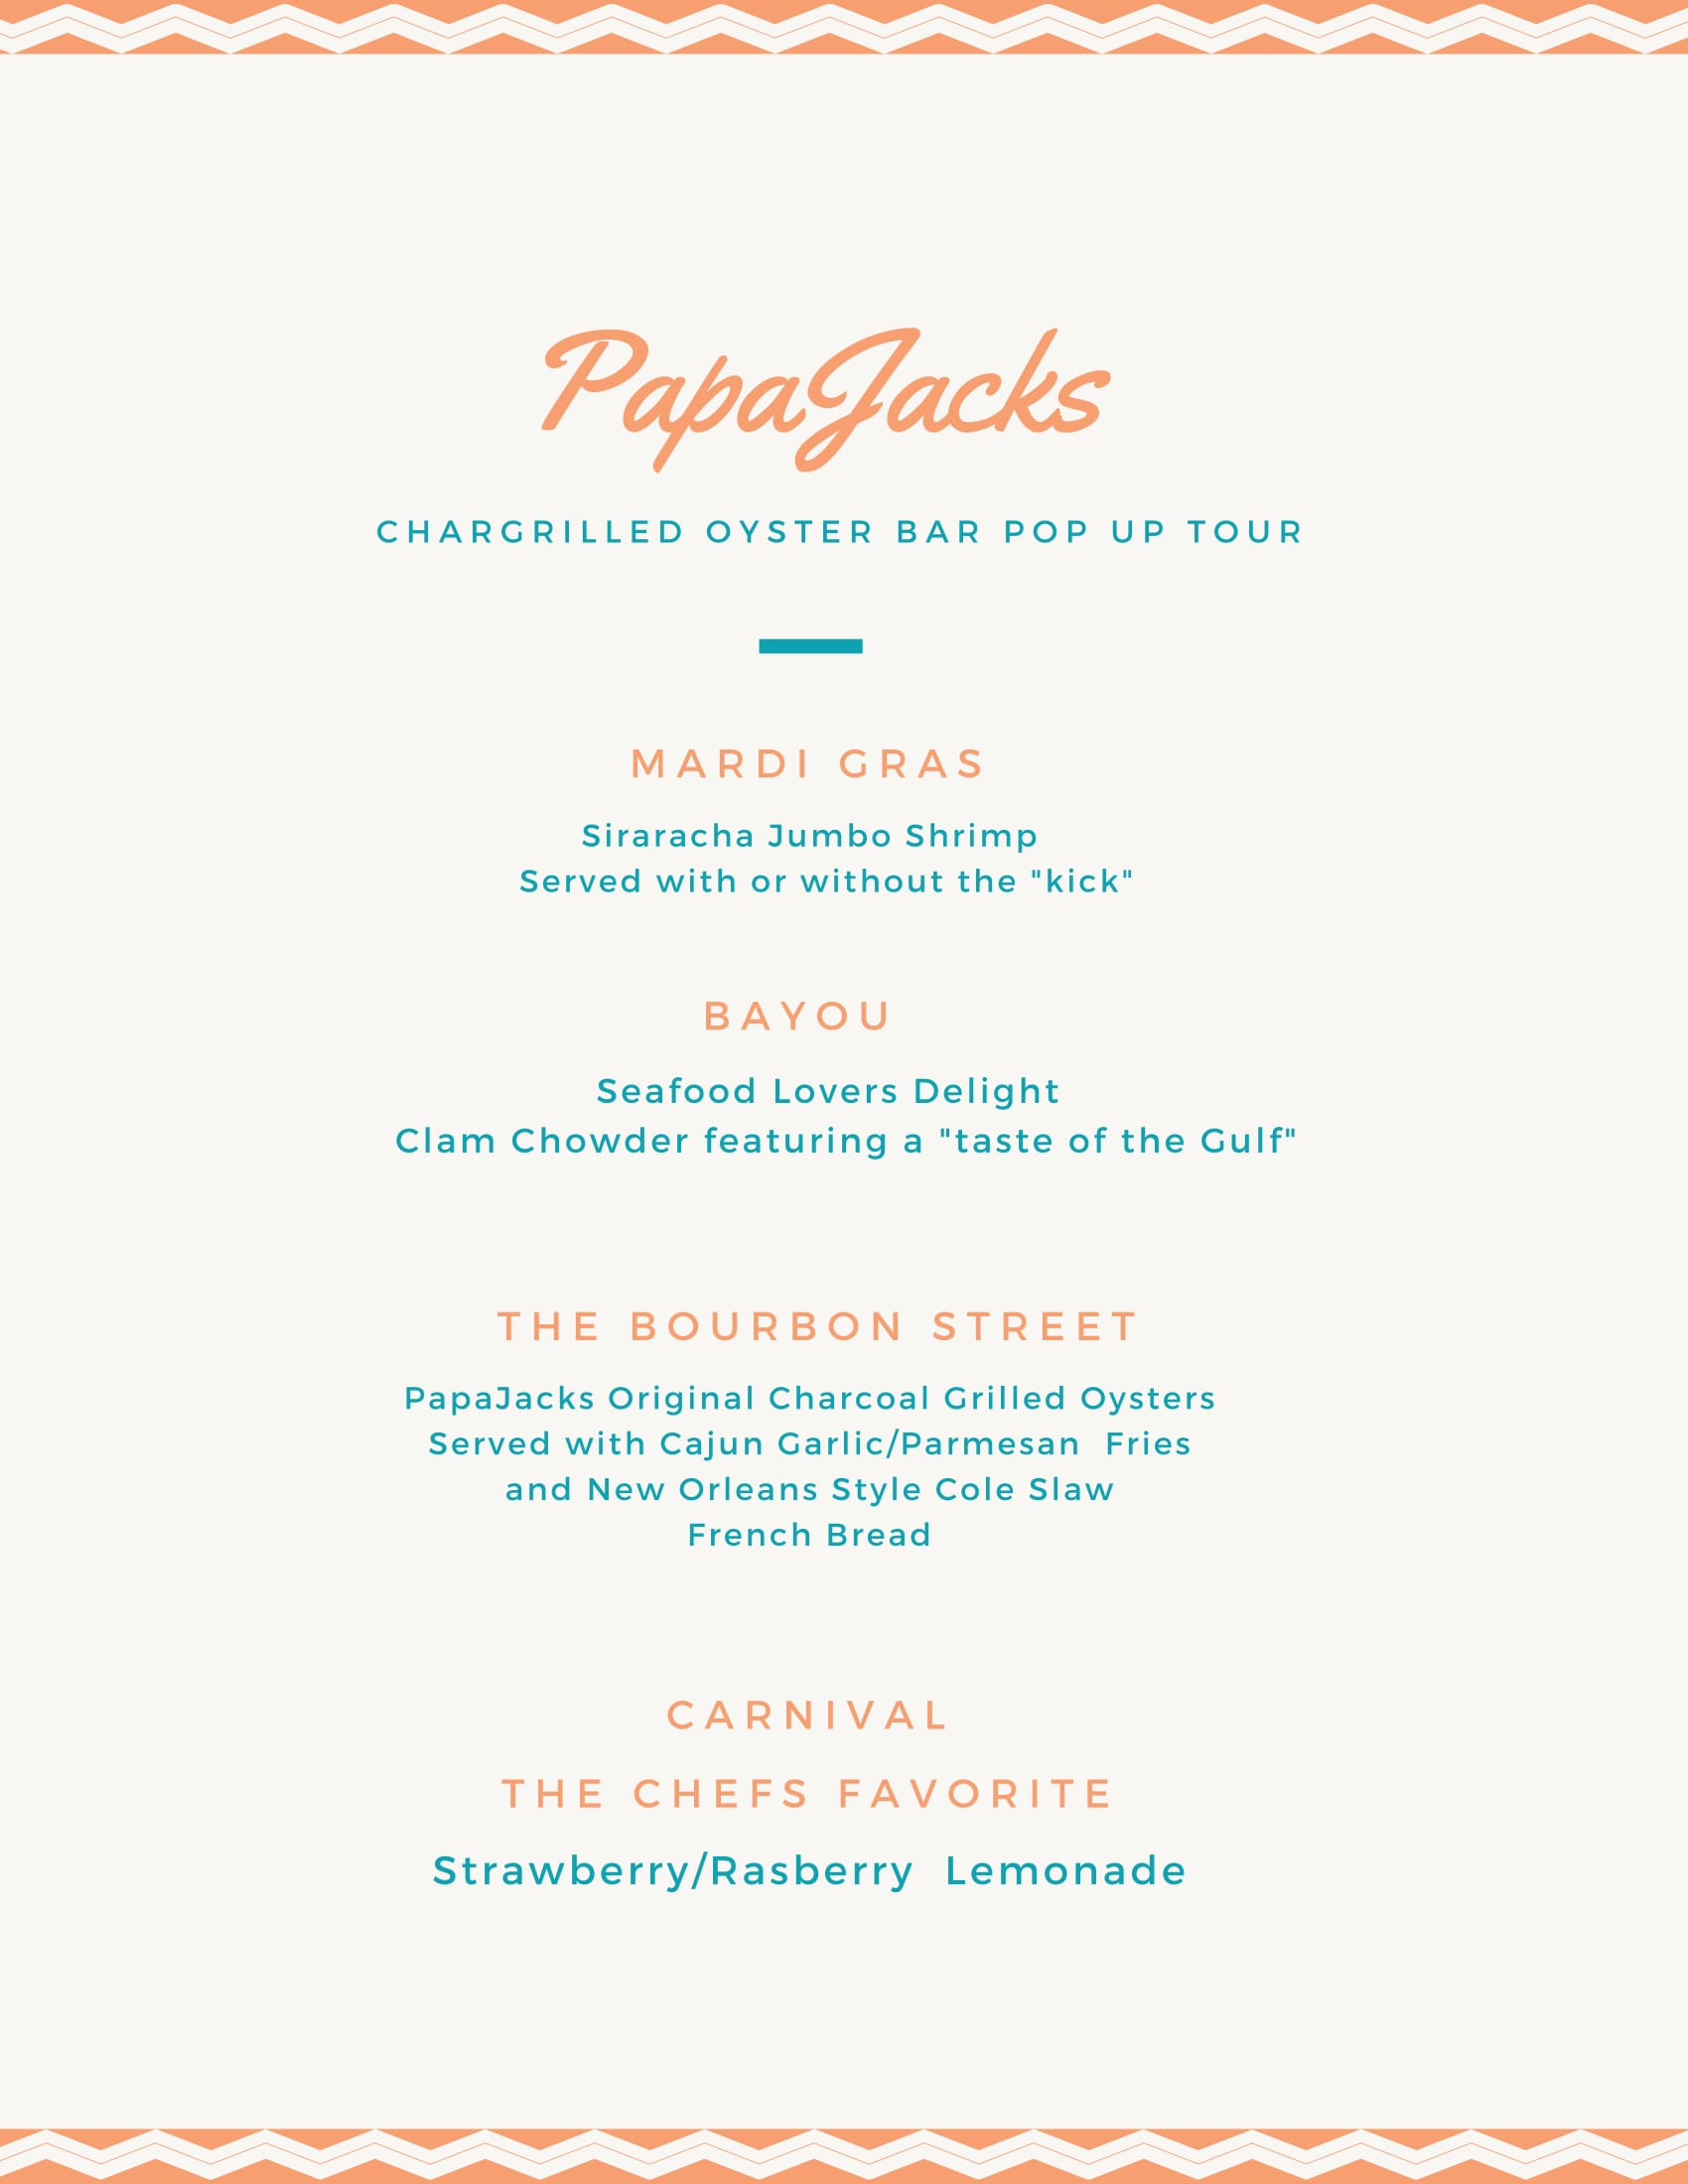 PapaJacks Menu